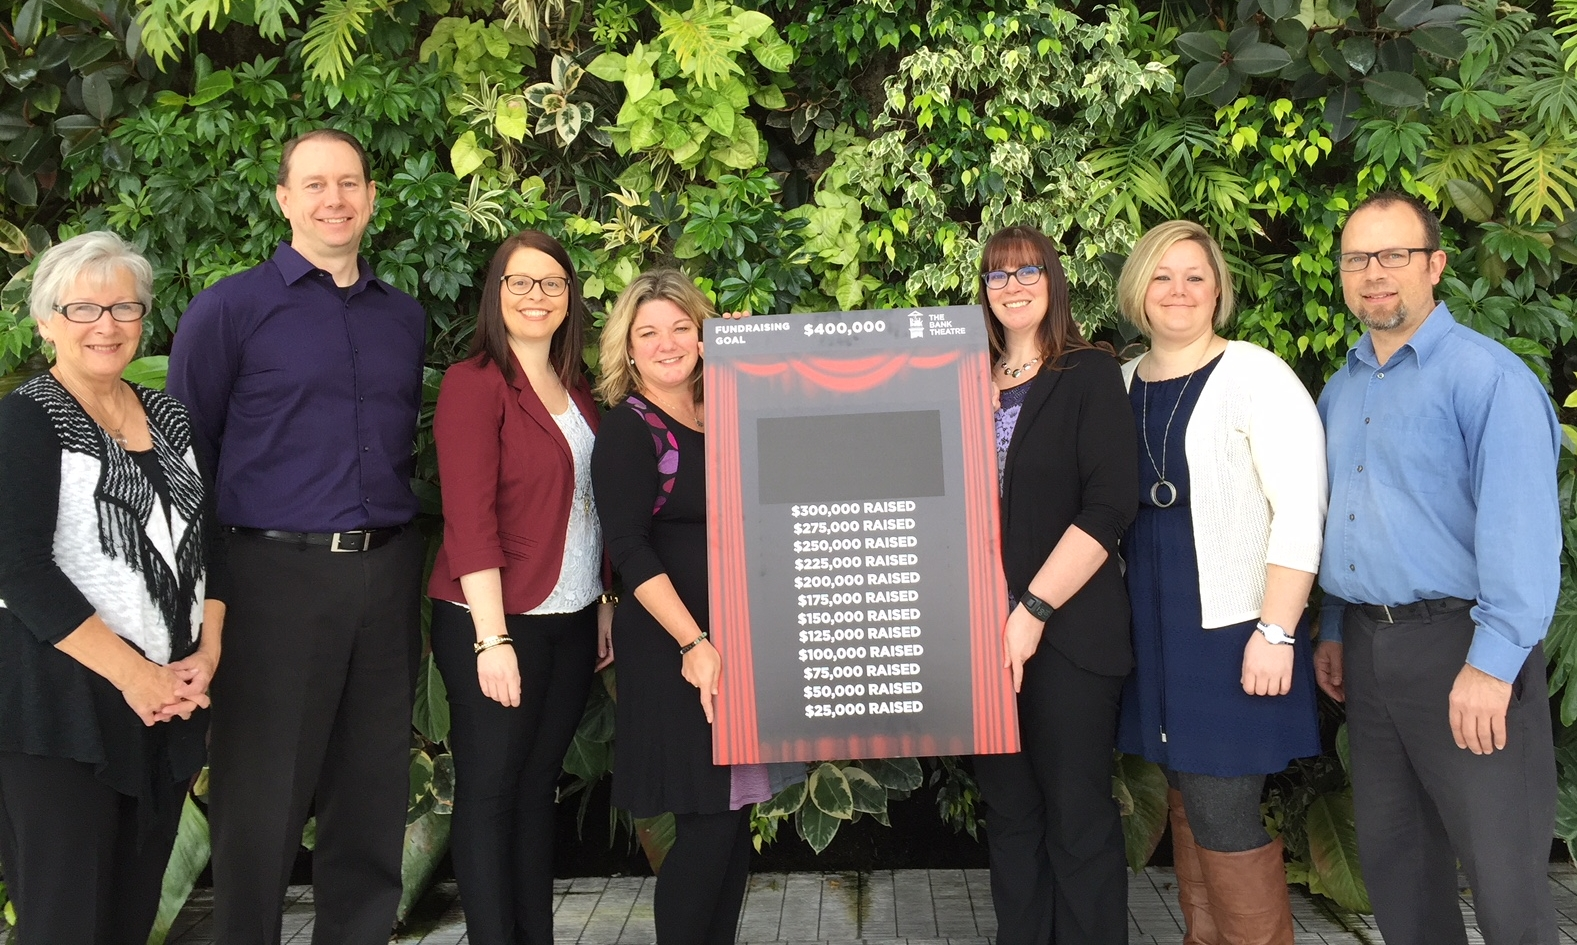 - Hicks, MacPherson, Iatonna & Driedger LLC donated $10,000 to The Bank Theatre. The Bank Theatre has reached $325,000 in the matching fund campaign with the Municipality of Leamington which is capped at $400,000.